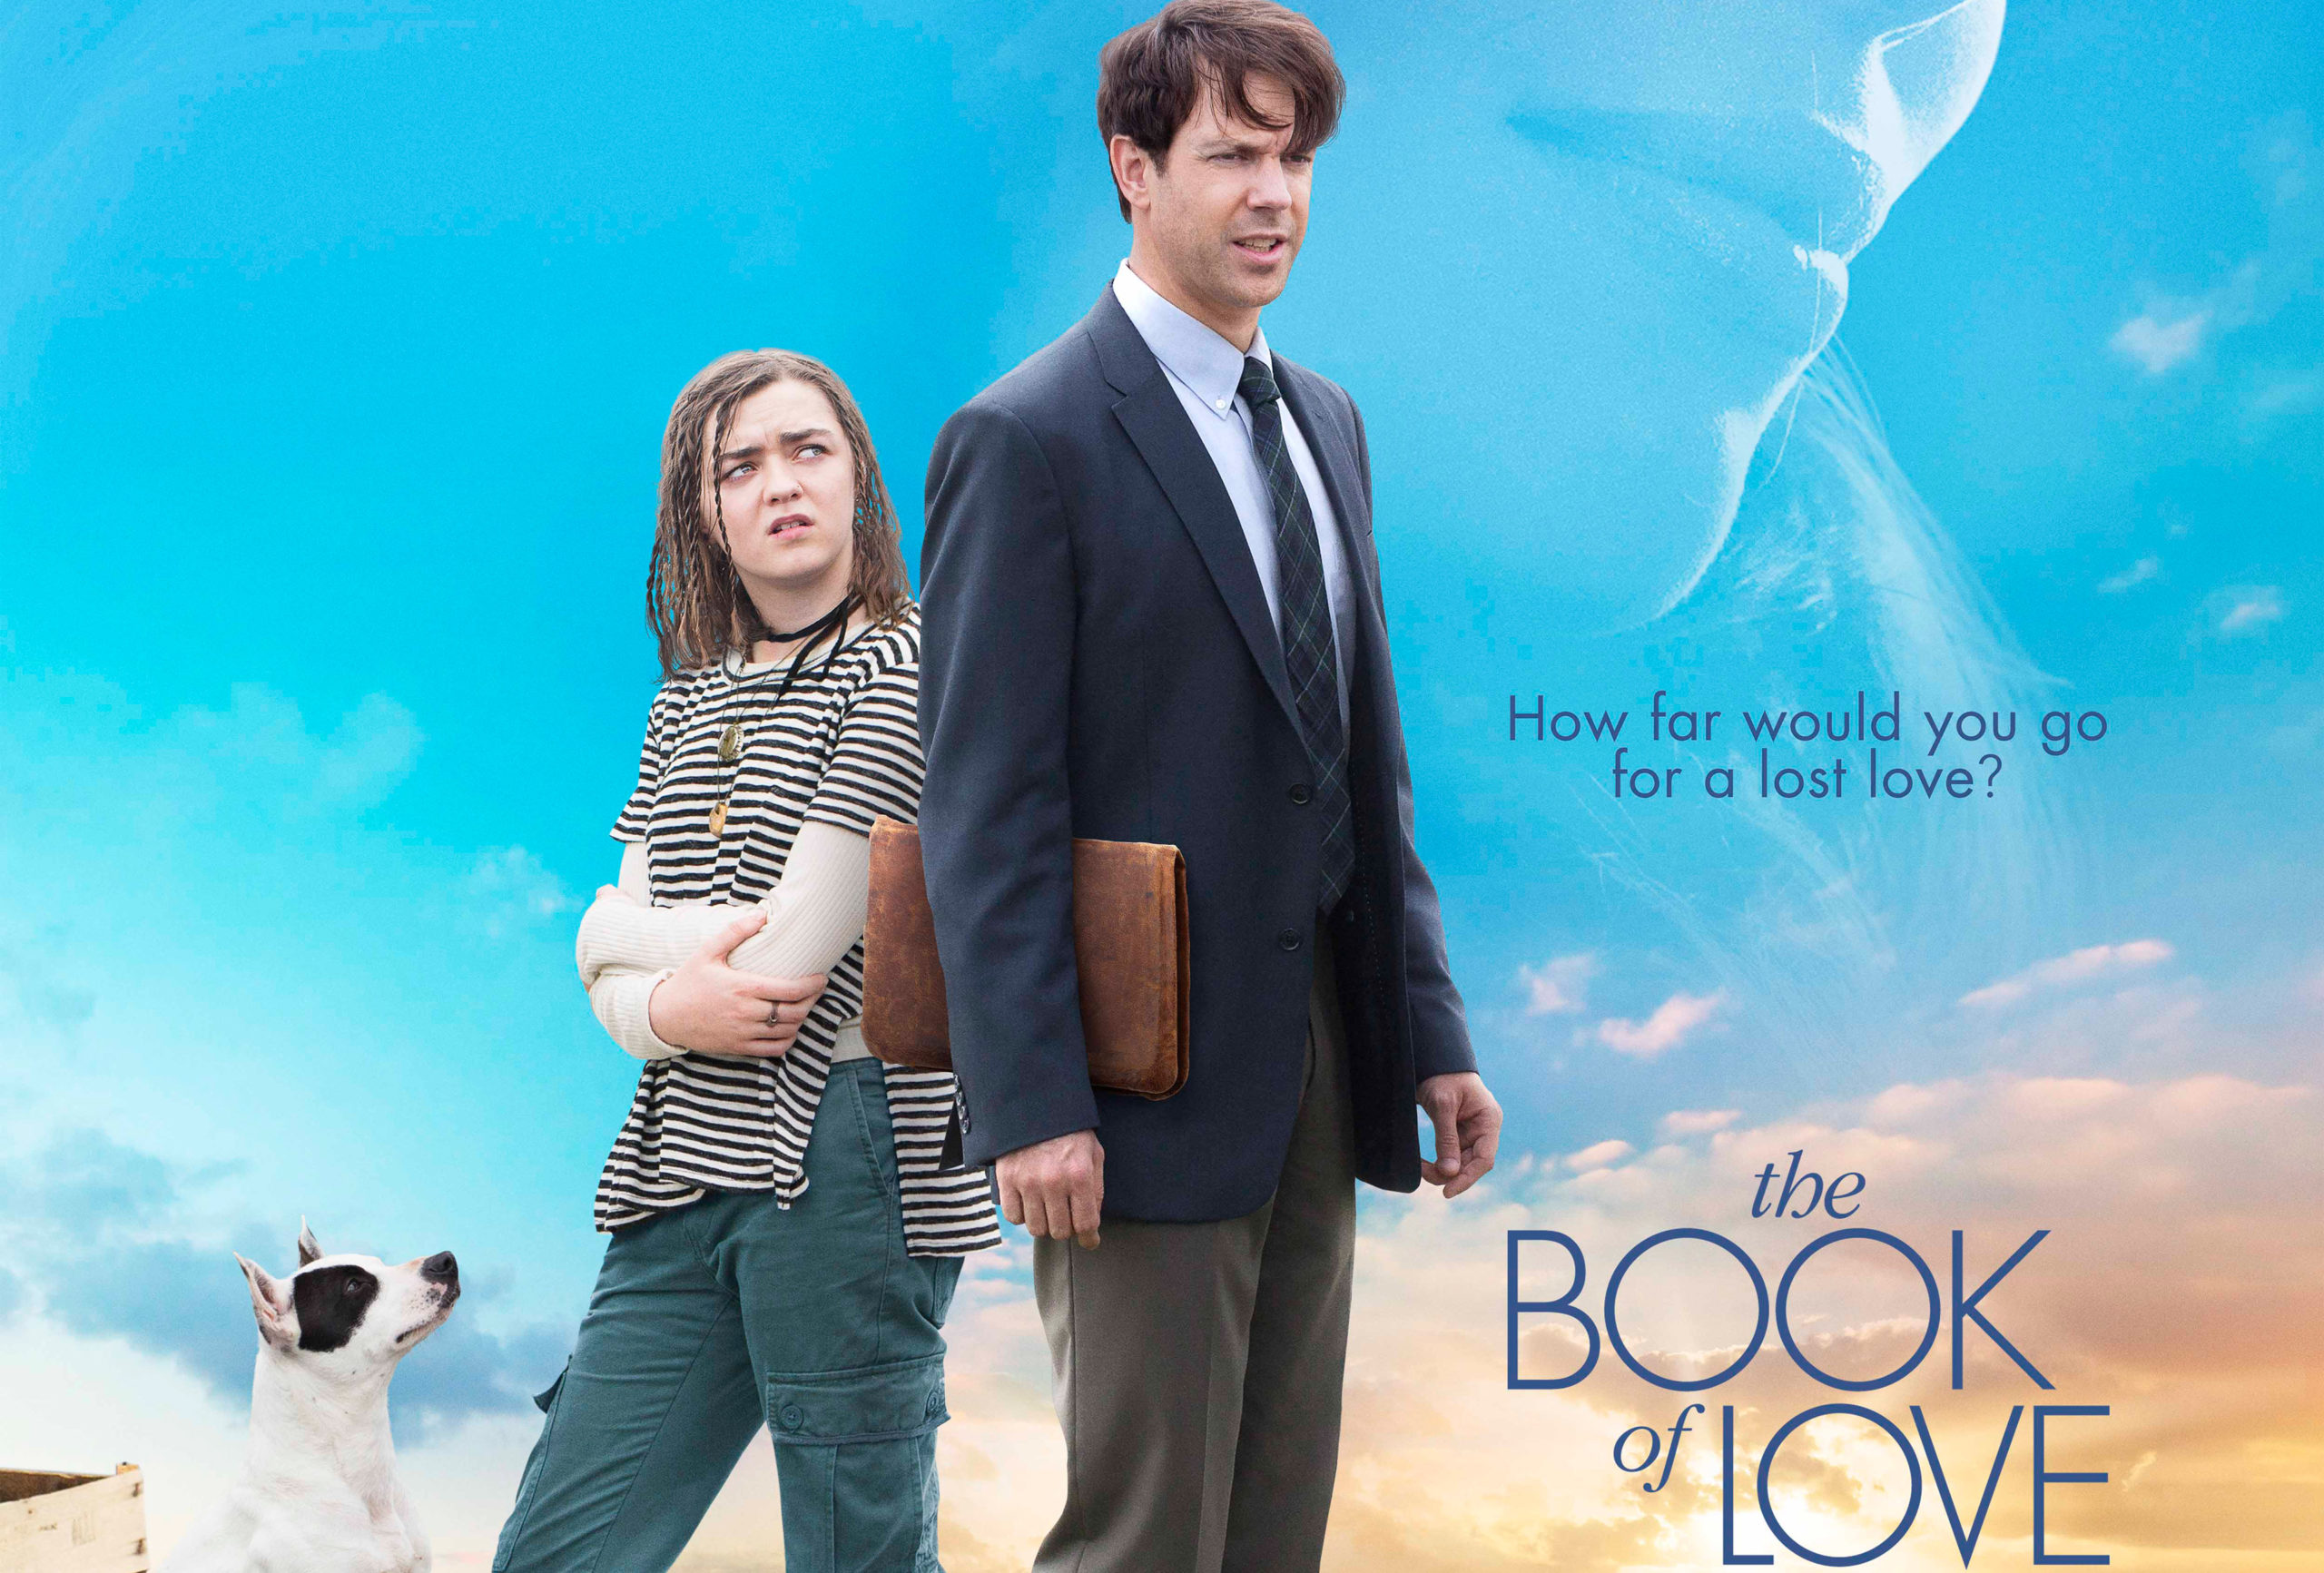 784884 byte size of The Book OF Love 2017 Movie Img.jpg